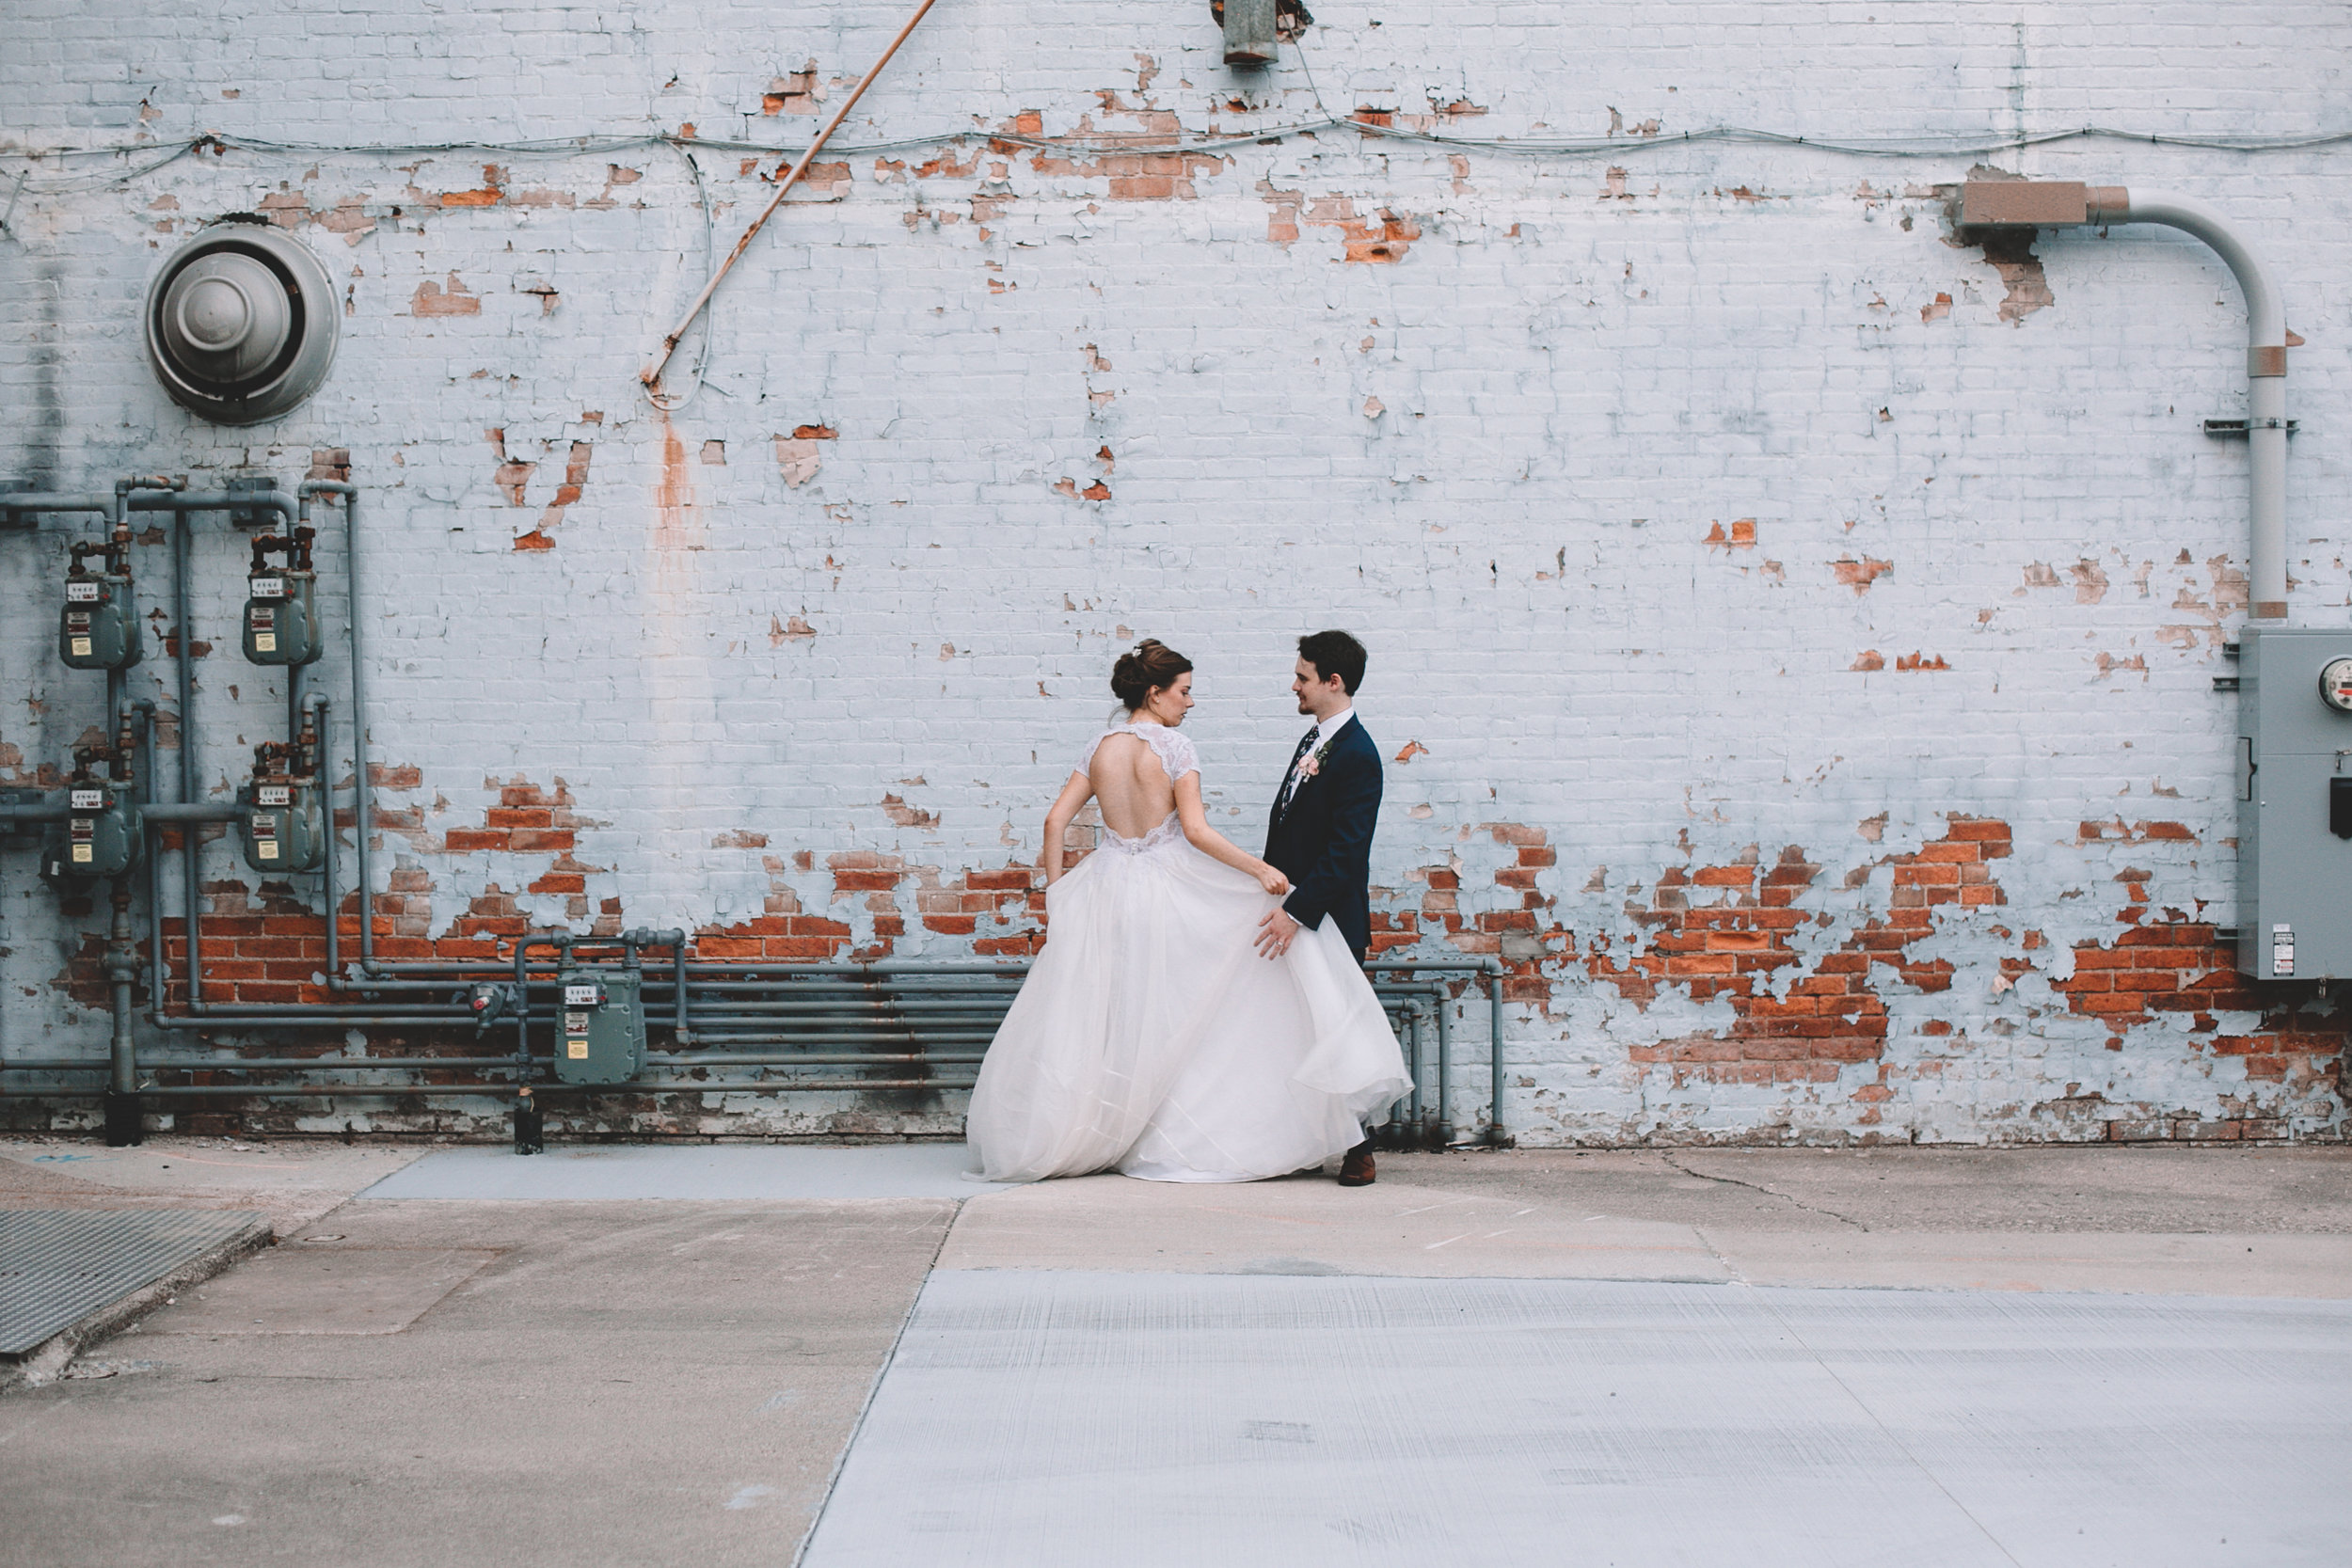 Urban Distressed Brick Wall Bridal Portraits Again We Say Rejoice Photography (8 of 18).jpg